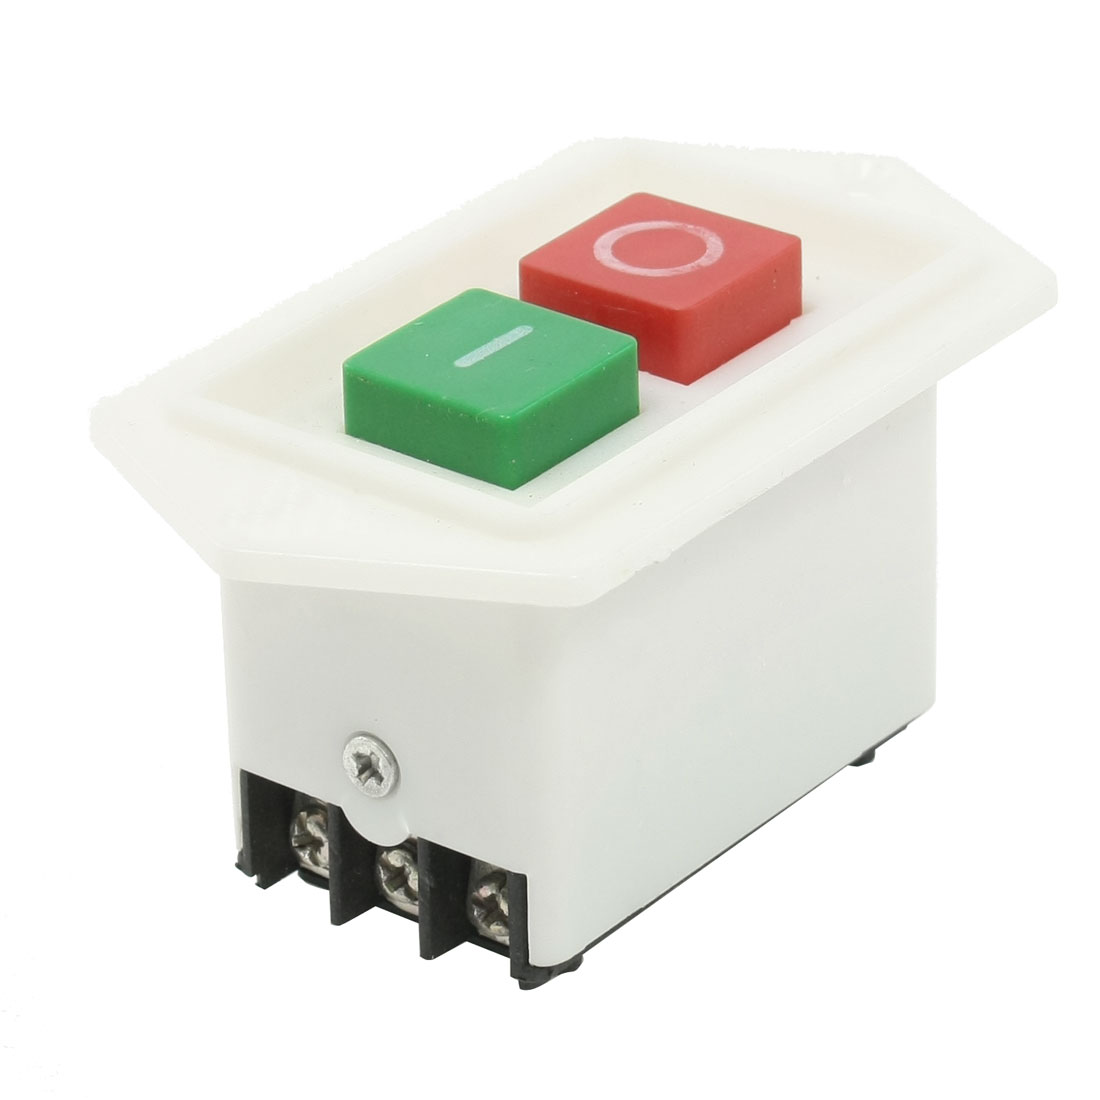 AC 380V 10A Panel Mounted I/O Start Stop Push Button Switch